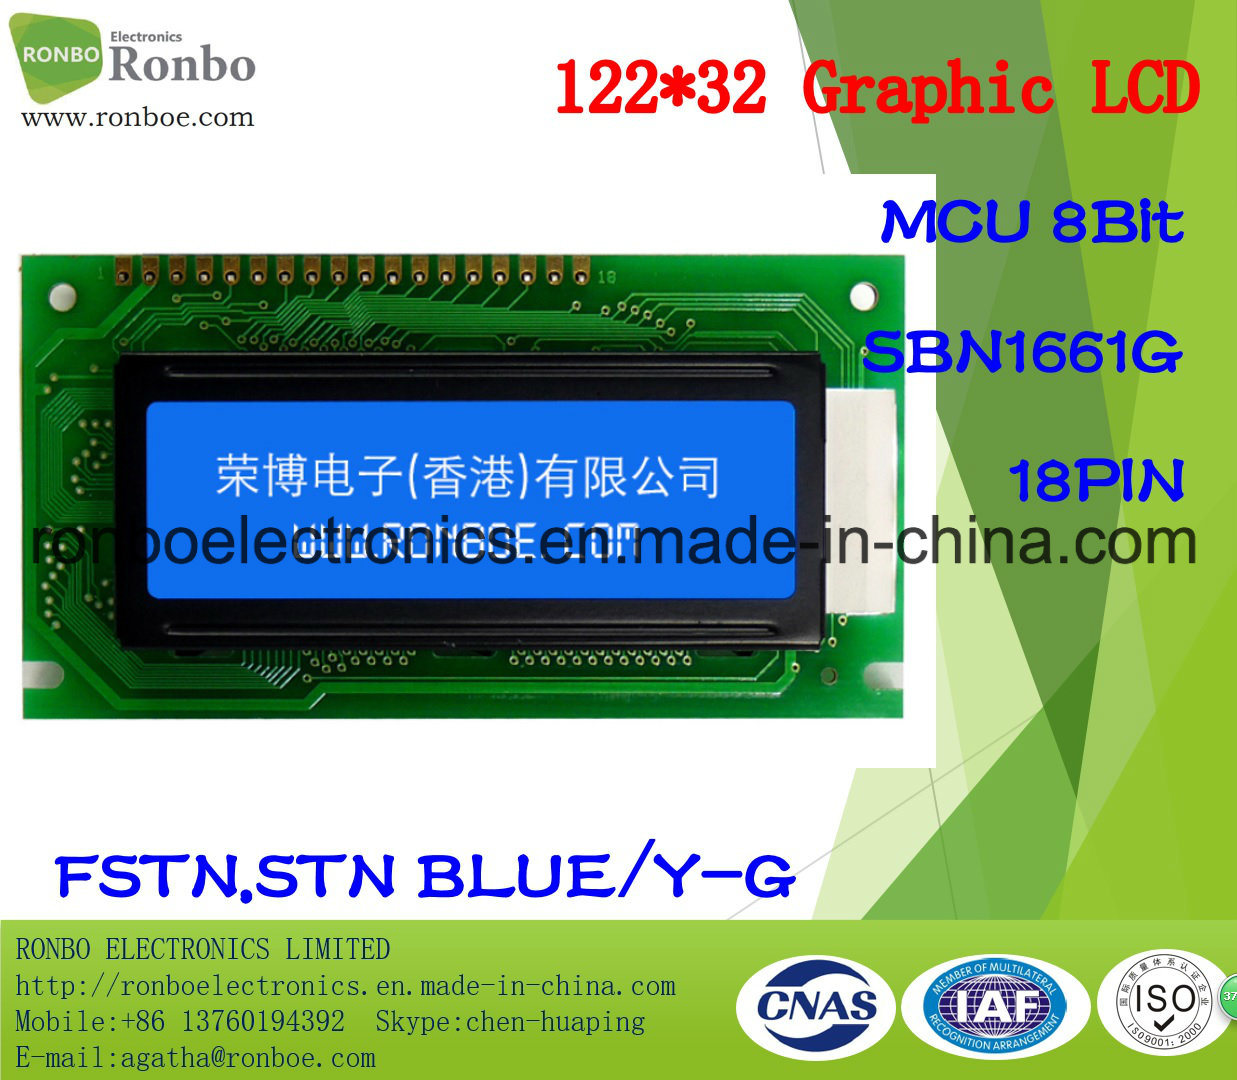 122X32 COB Graphic LCD Display, MCU 8bit, St7920, 18pin for Medical Instrument